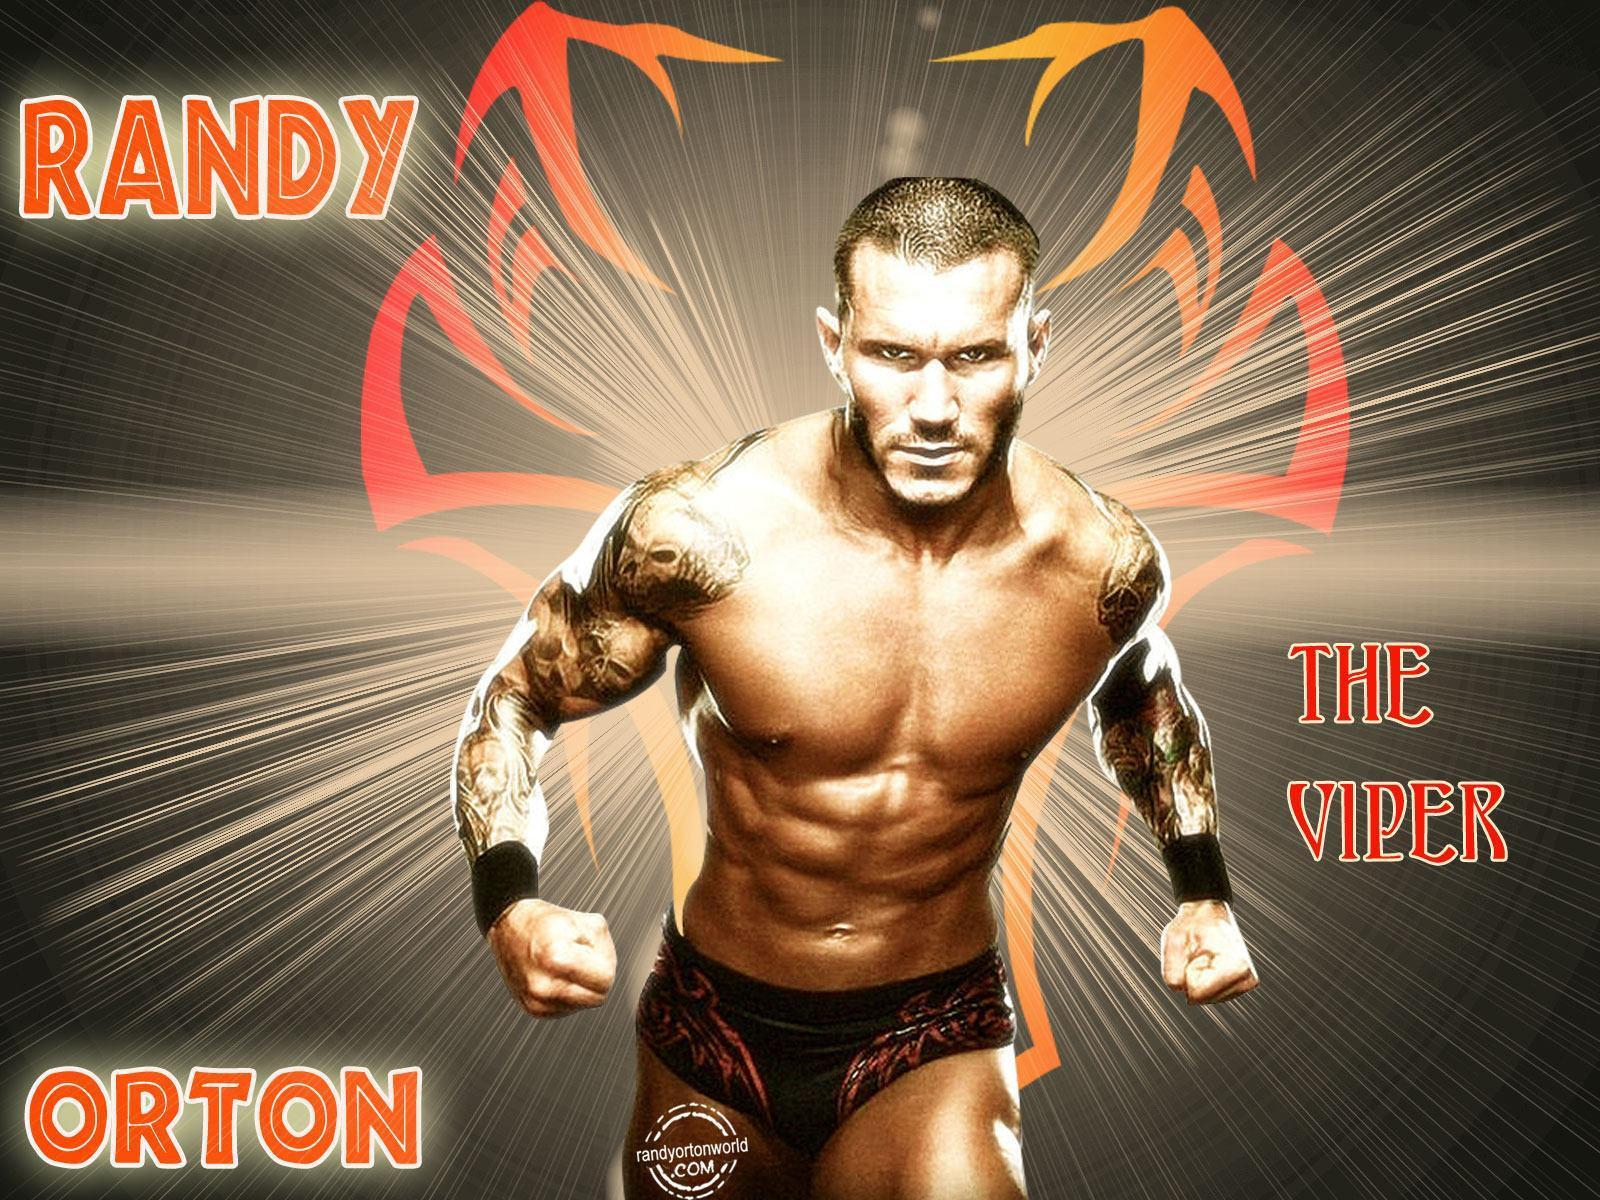 Randy Orton HD Wallpapers: Randy Orton The Viper Wallpapers